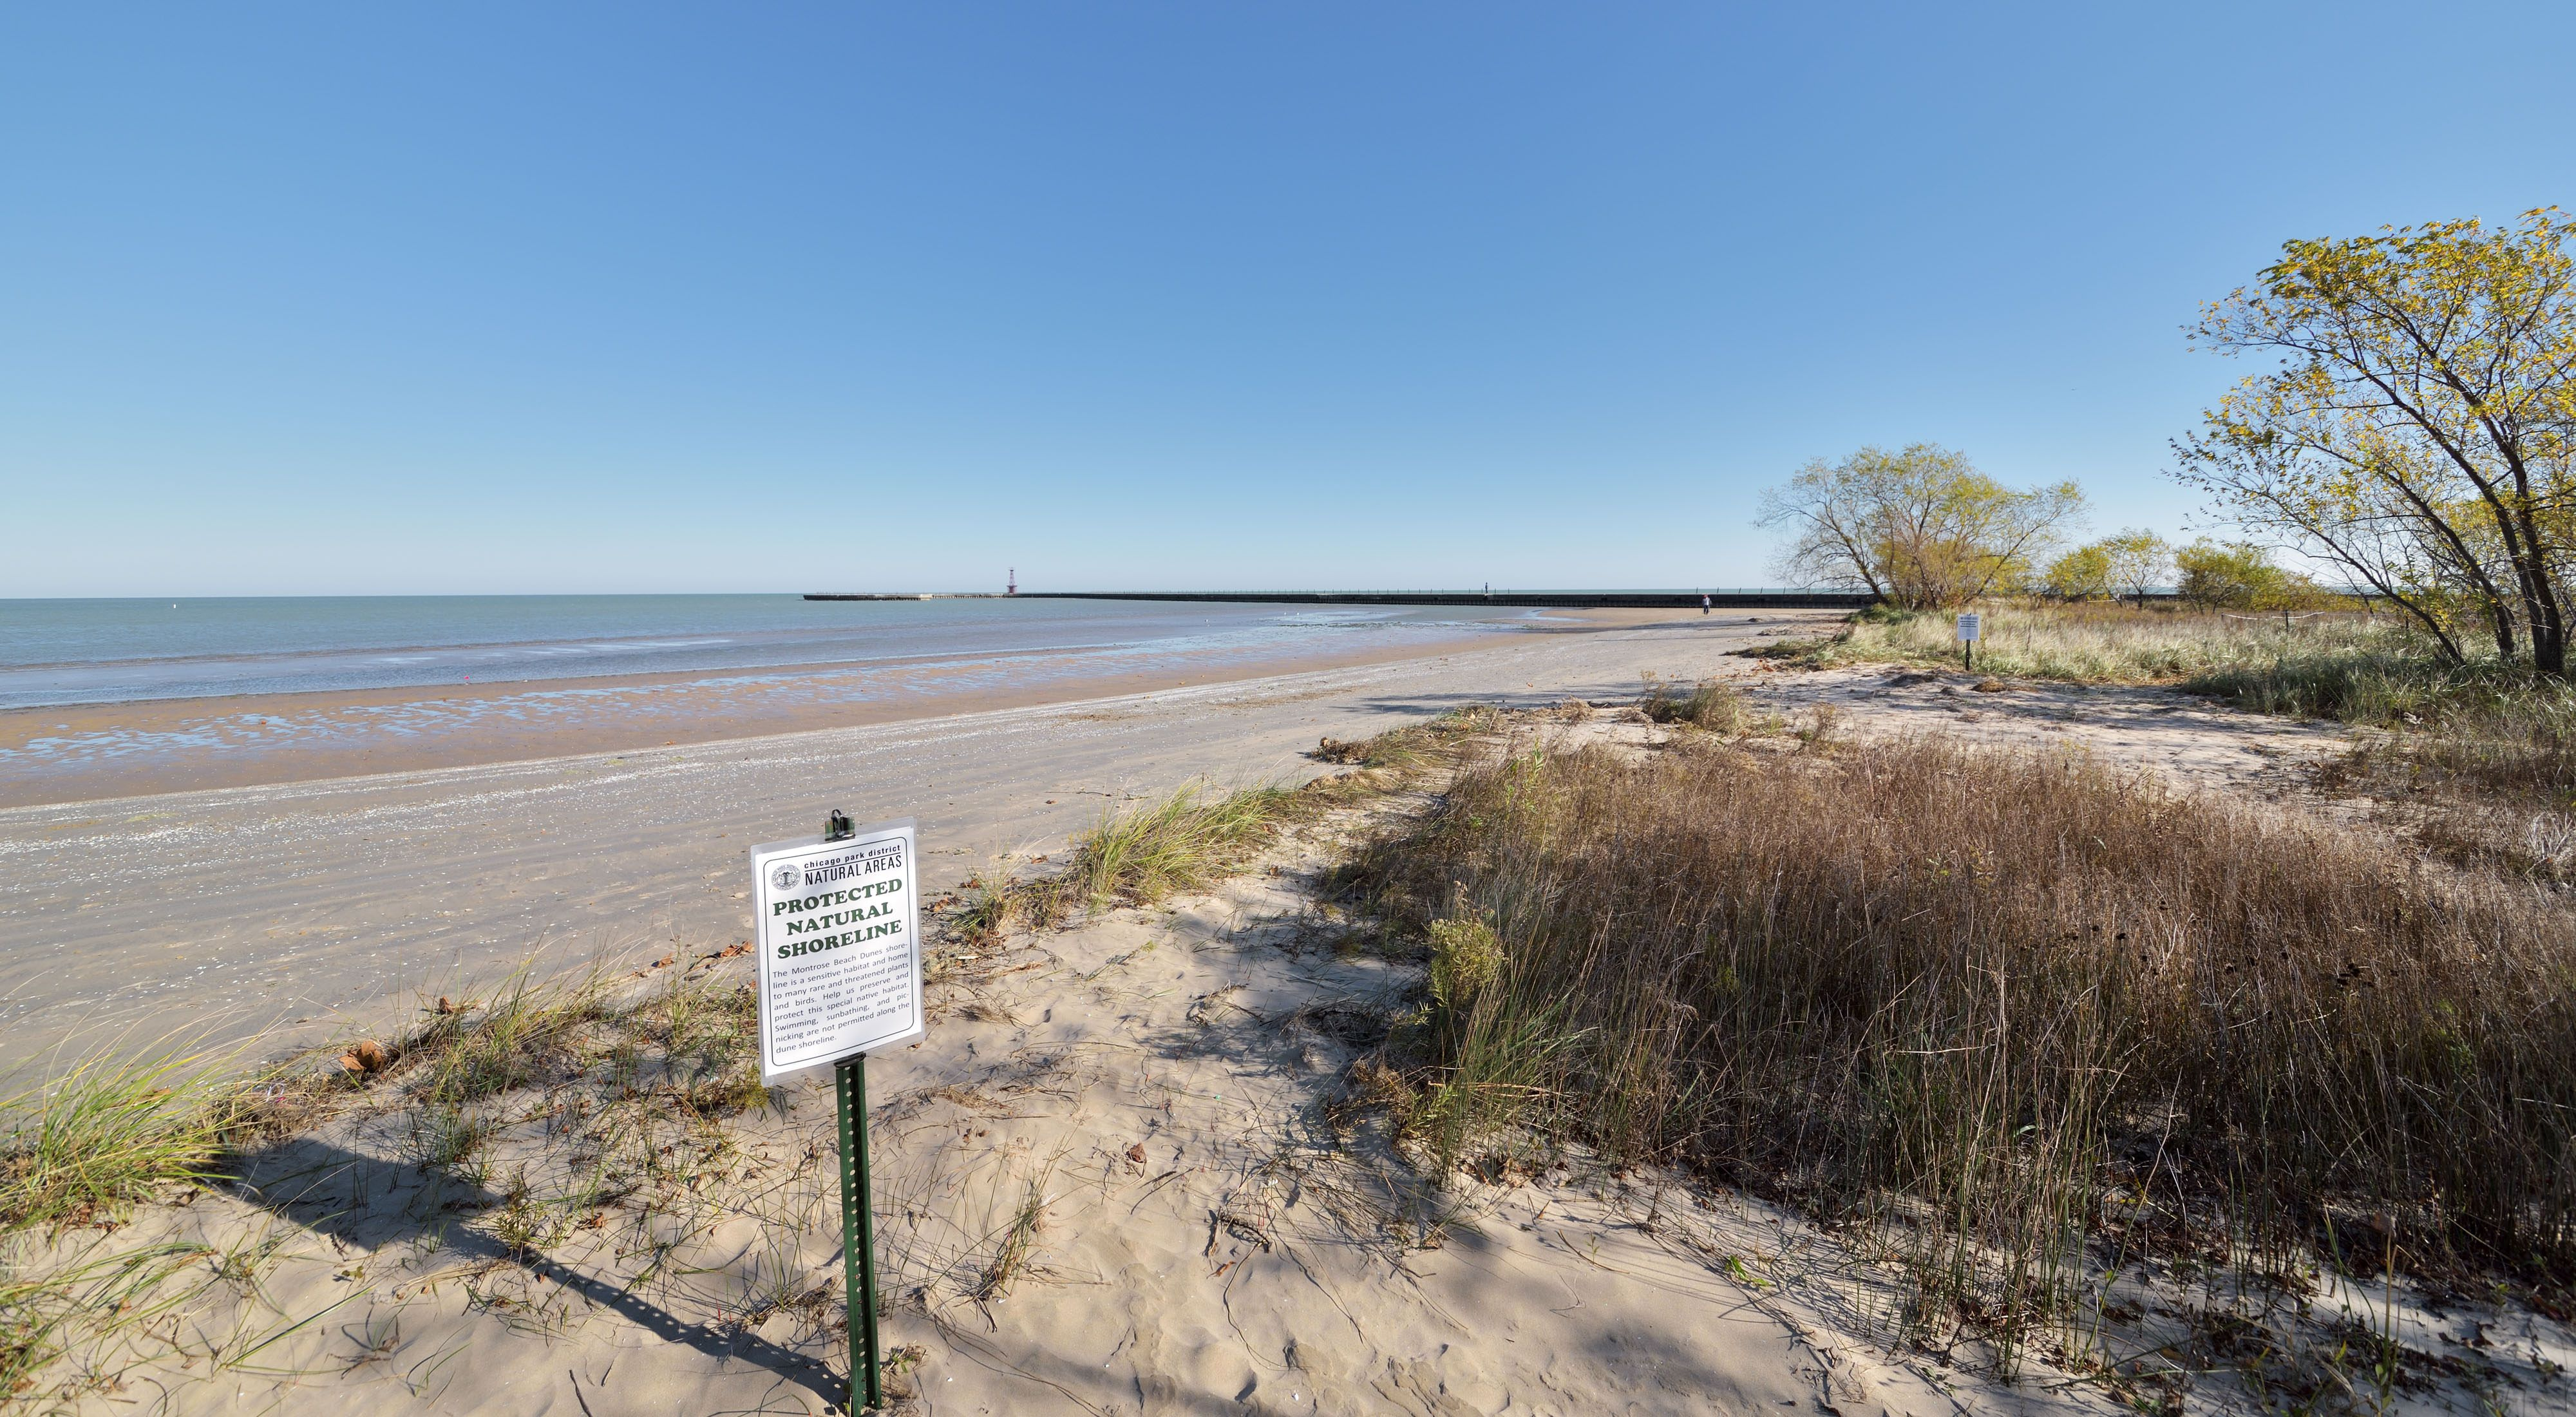 A protected shoreline sign stands along the edge of the water at Chicago's Montrose beach.